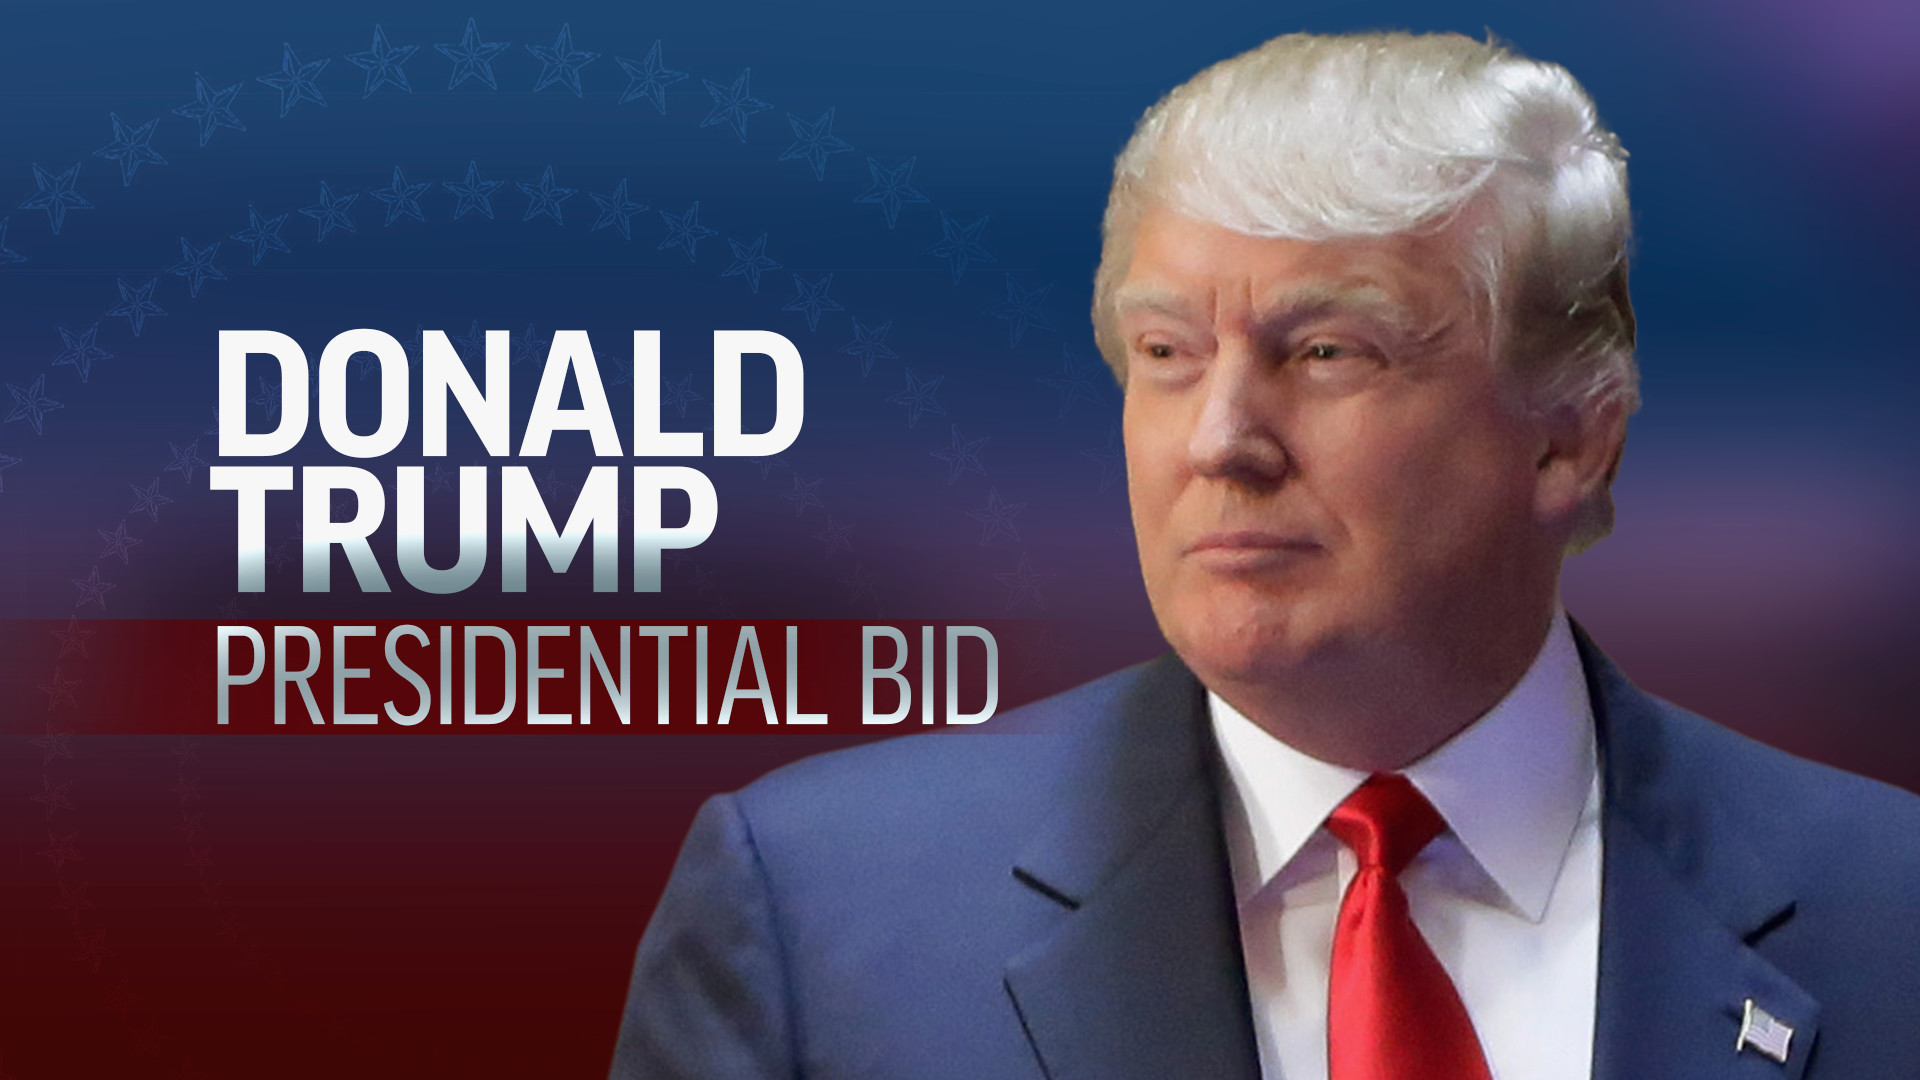 1920x1080 Donald Trump Wallpapers 2016: Find best latest Donald Trump Wallpapers 2016  in HD for your